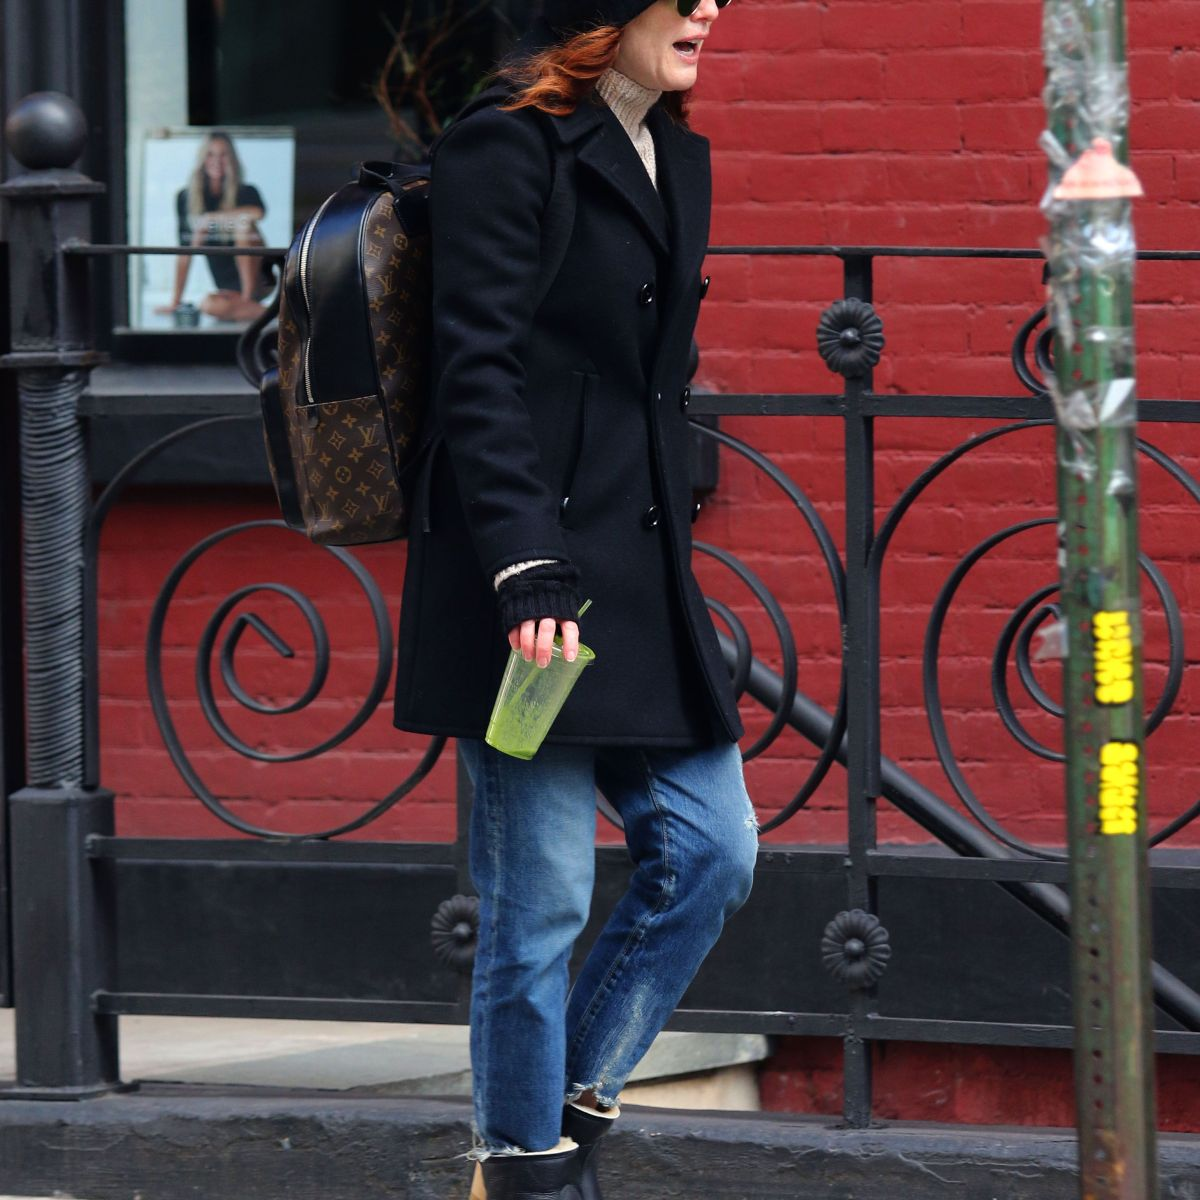 Julianne Moore Is Makeup-Free and All Smiles While Out on a Cold NYC Day